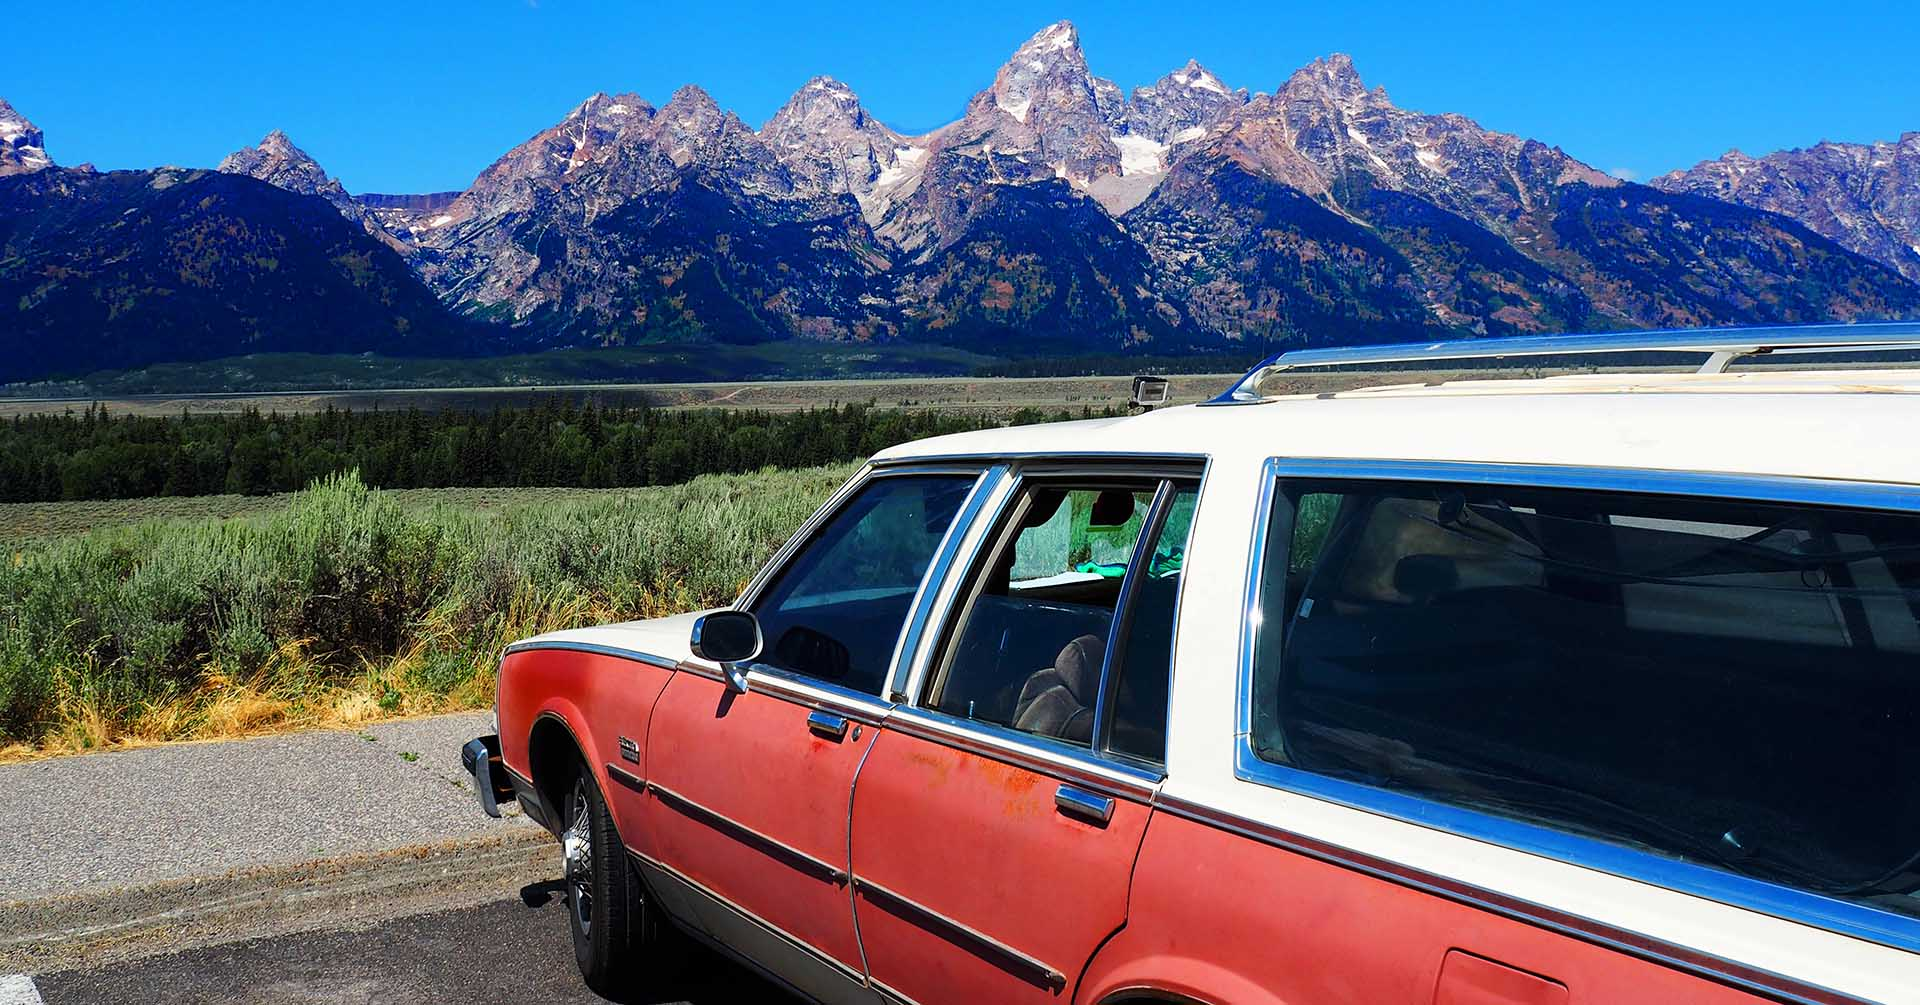 Old car in front of montains as an inspiration or planning a road trip